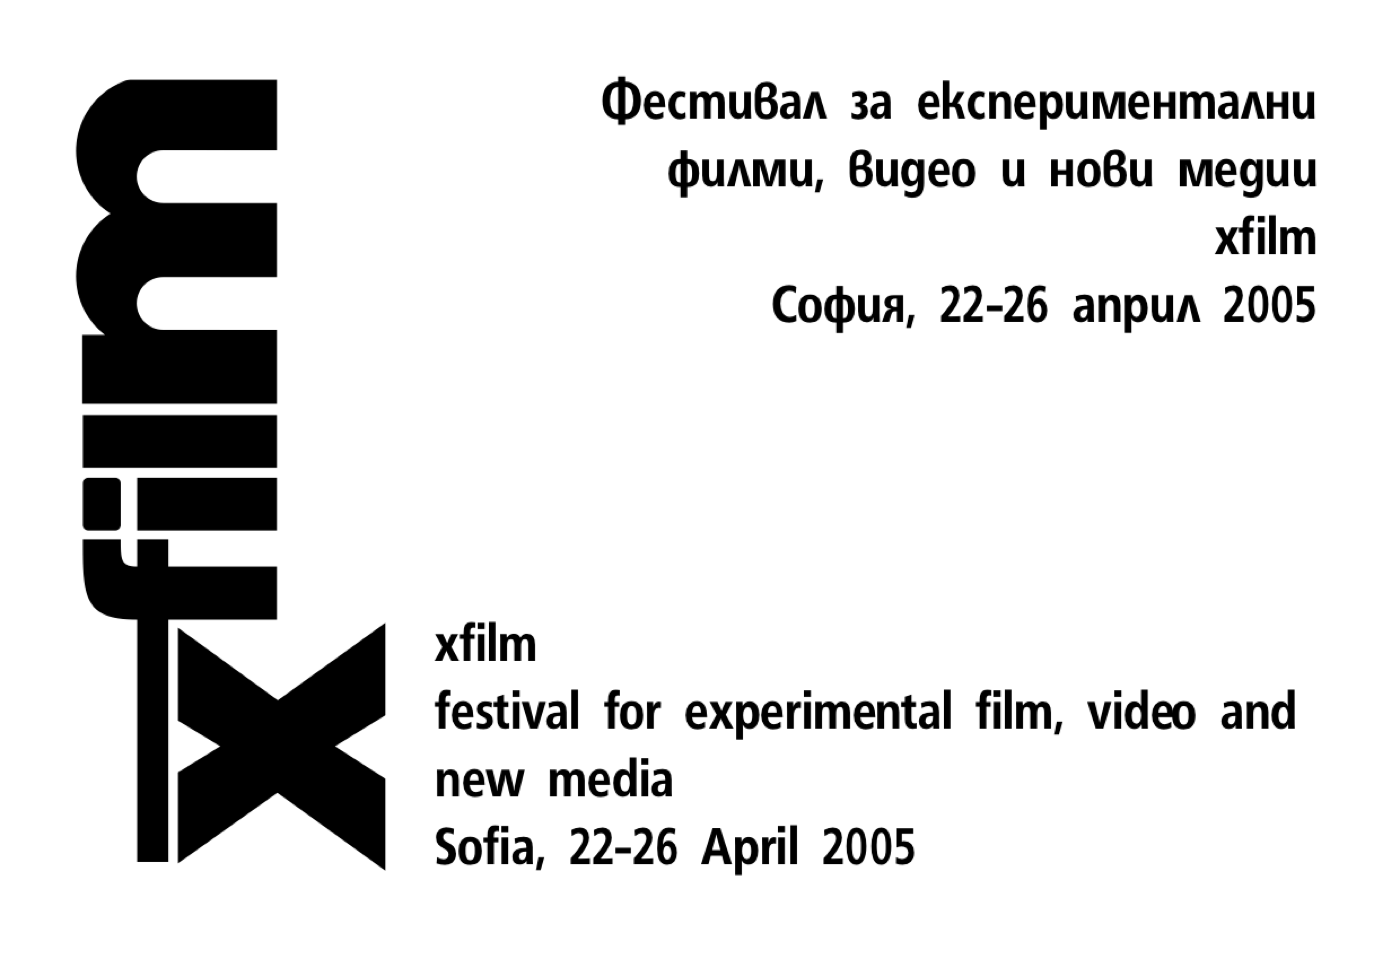 xfilm festival for experimental film, video and new media, was held in Sofia in April 2005